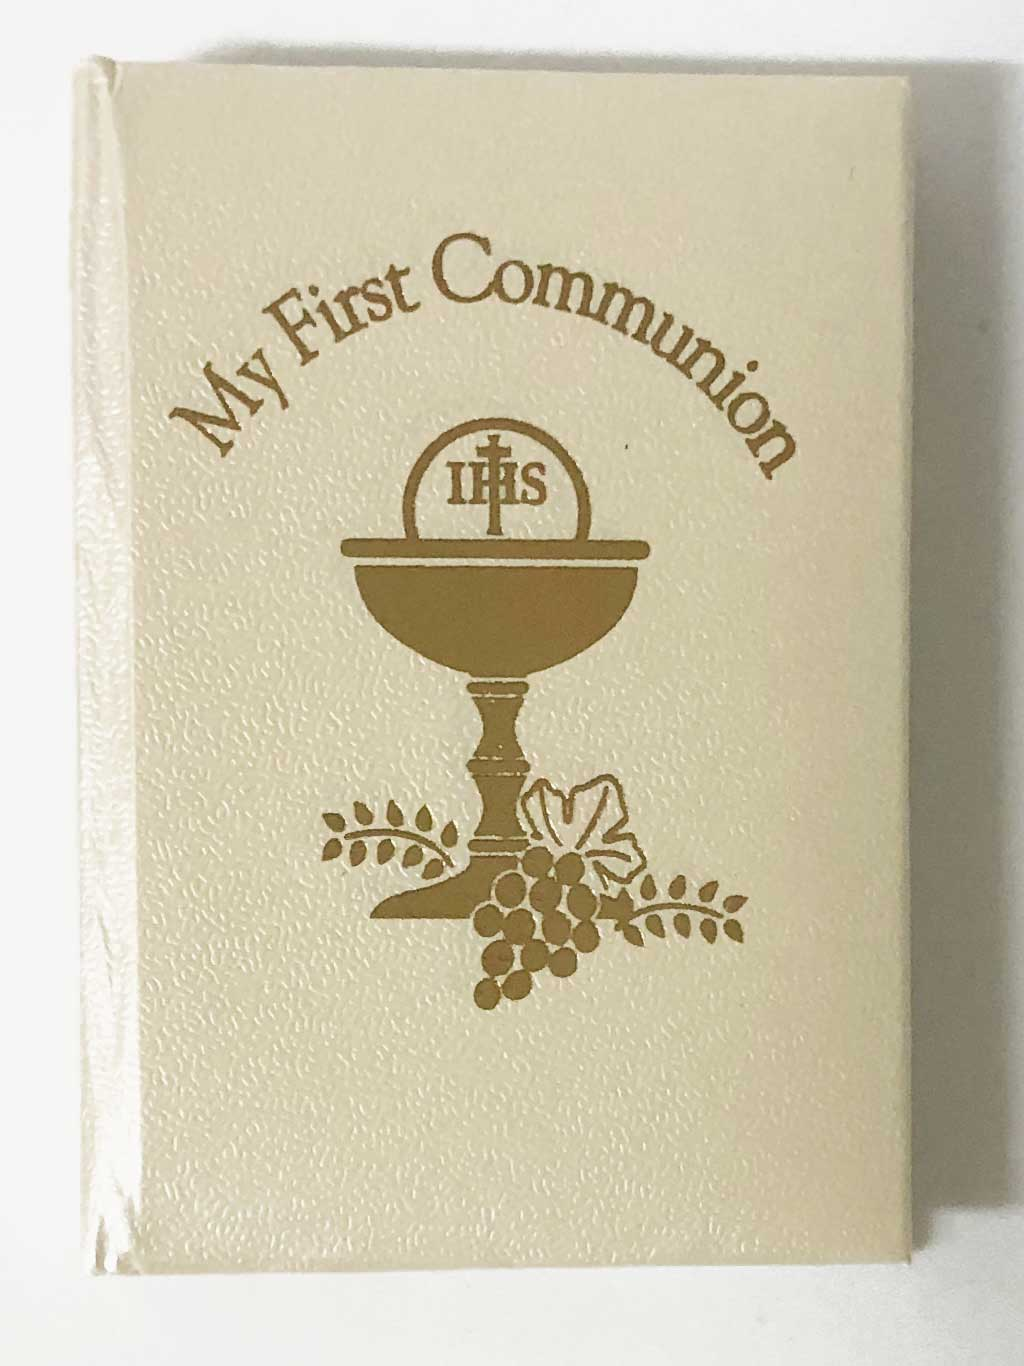 Deluxe Pearlized White First Communion Missal